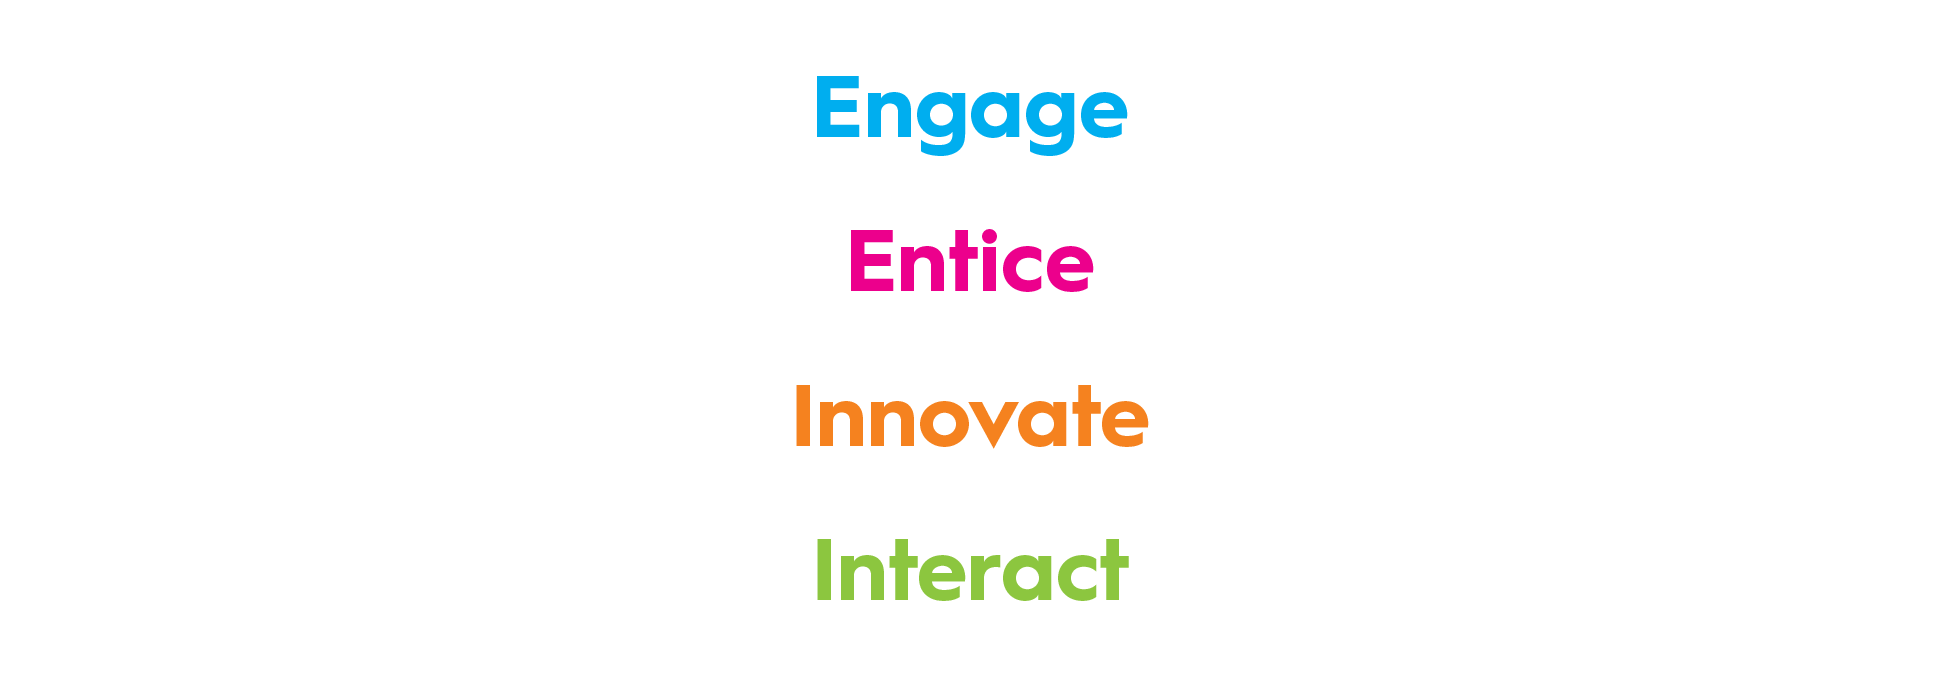 engage entice innovate interact-01.png